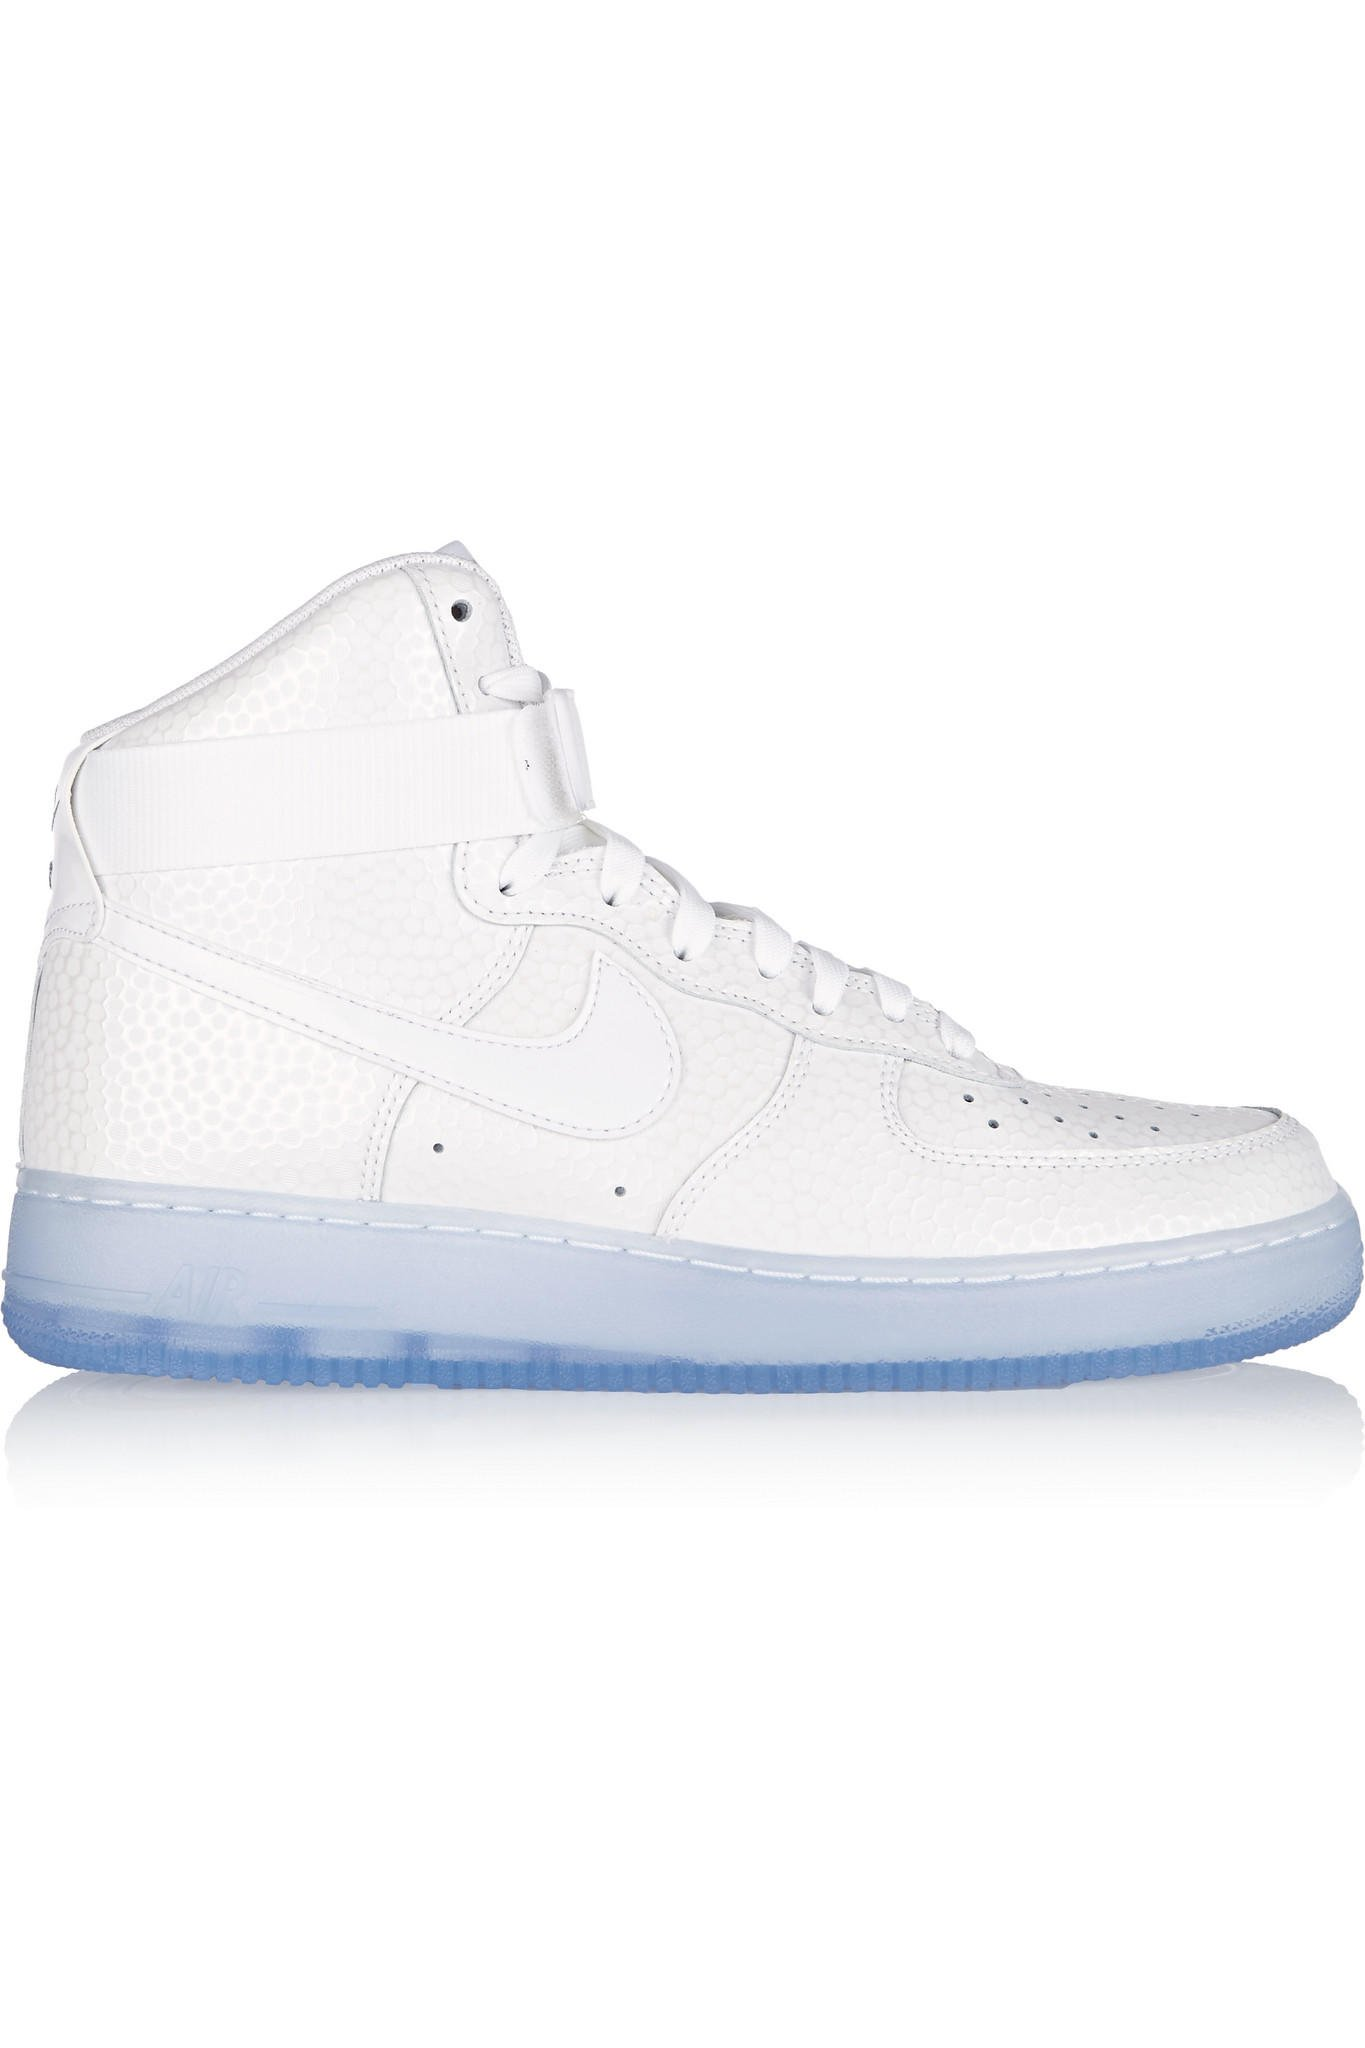 Nike - Air Force 1 Hi Premium from NET-A-PORTER 13900c840